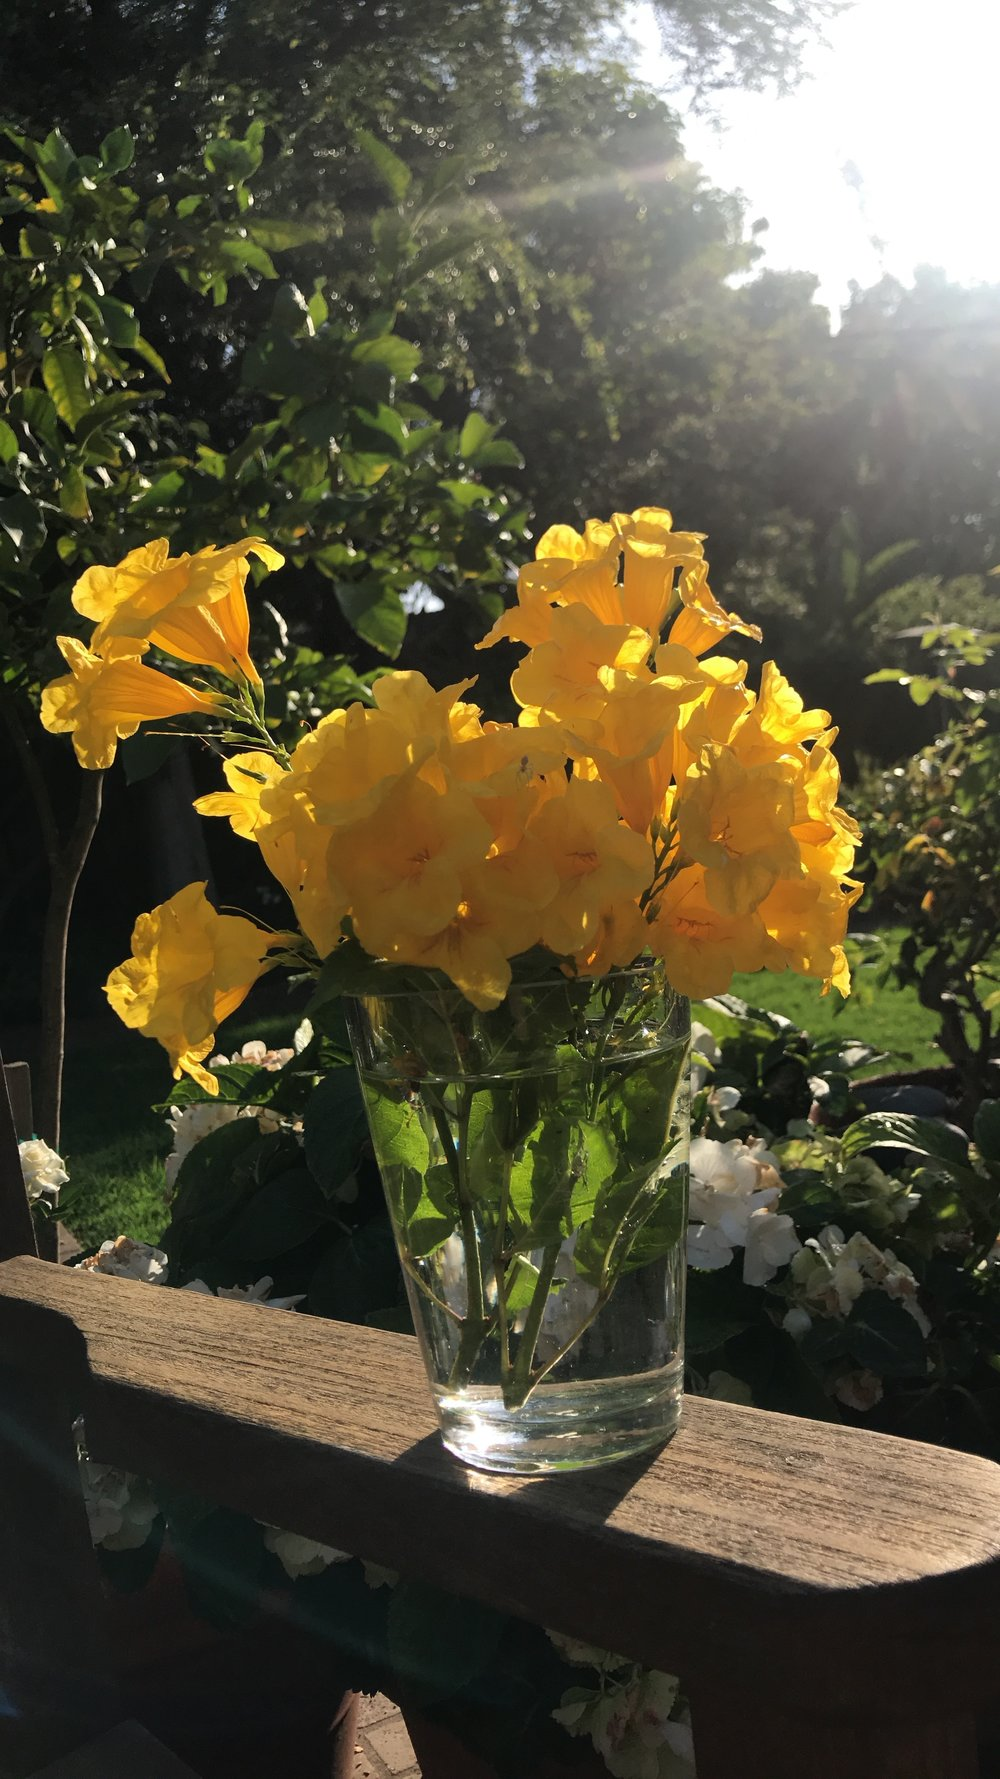 I absolutely love the way the sun shines through flowers in the early evening. My mom cut these yellow flowers to use as a centerpiece for the dinner table and they looked so beautiful. Flowers will never not make me happy.